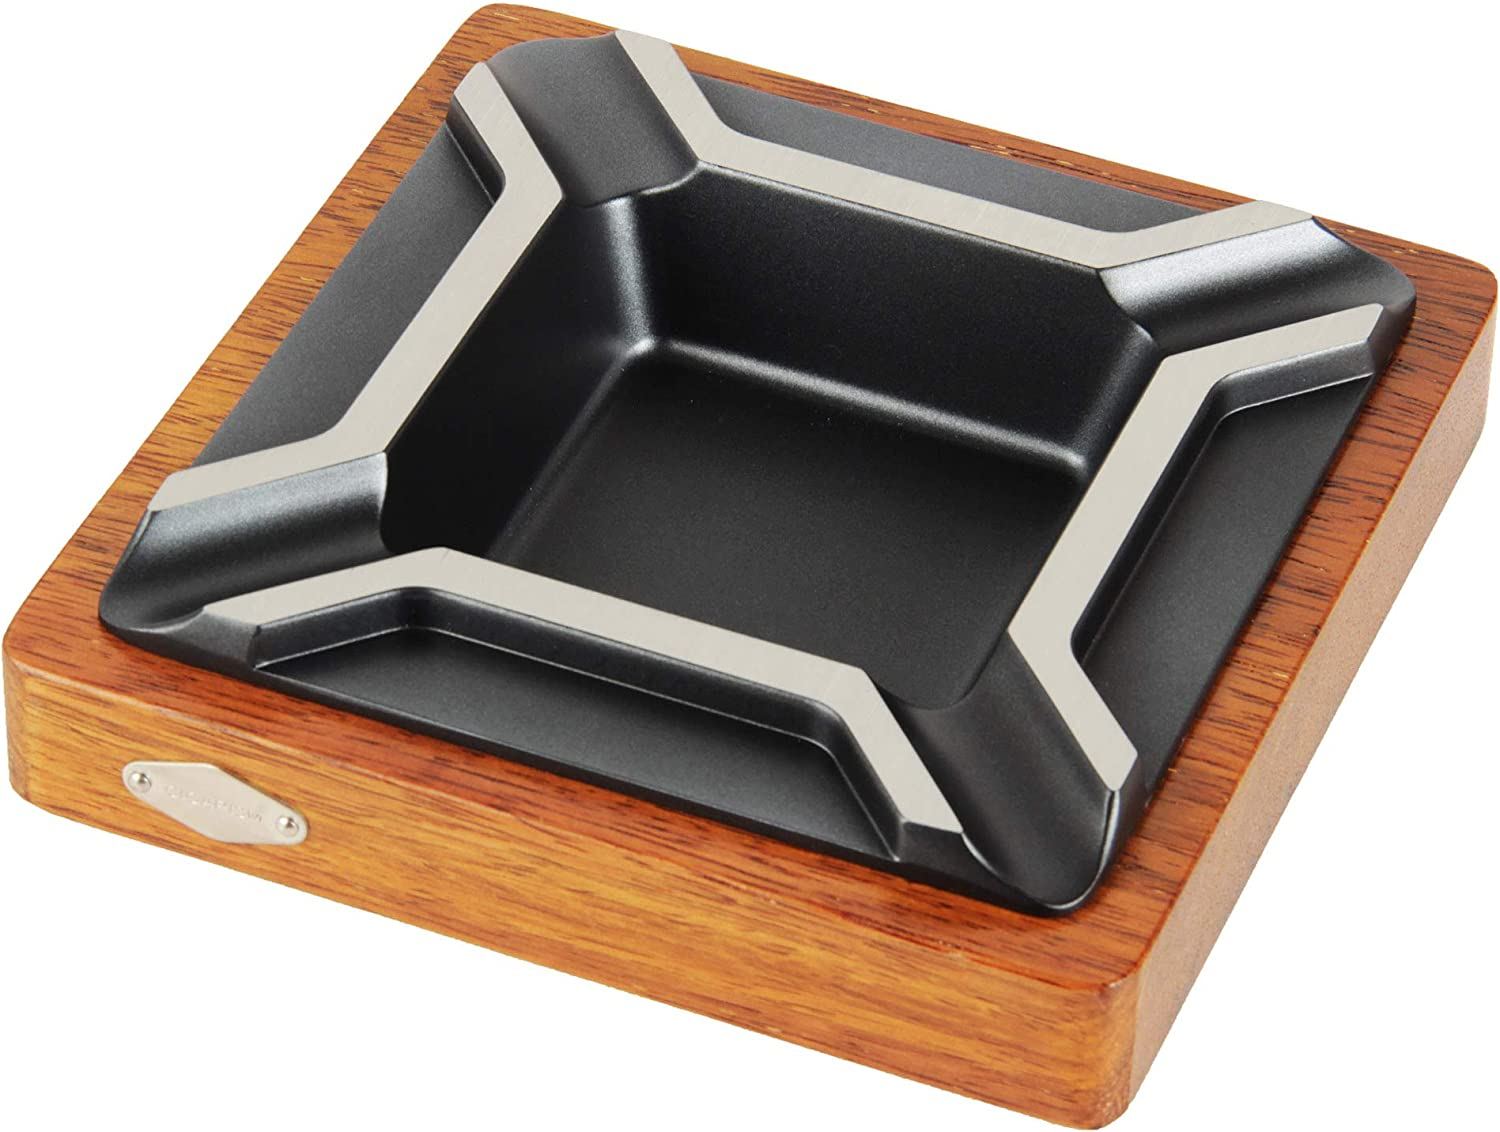 CIGARISM Large Raleigh Mall Square Merbau Zinc Decoration Cigar Max 78% OFF Alloy Ashtray